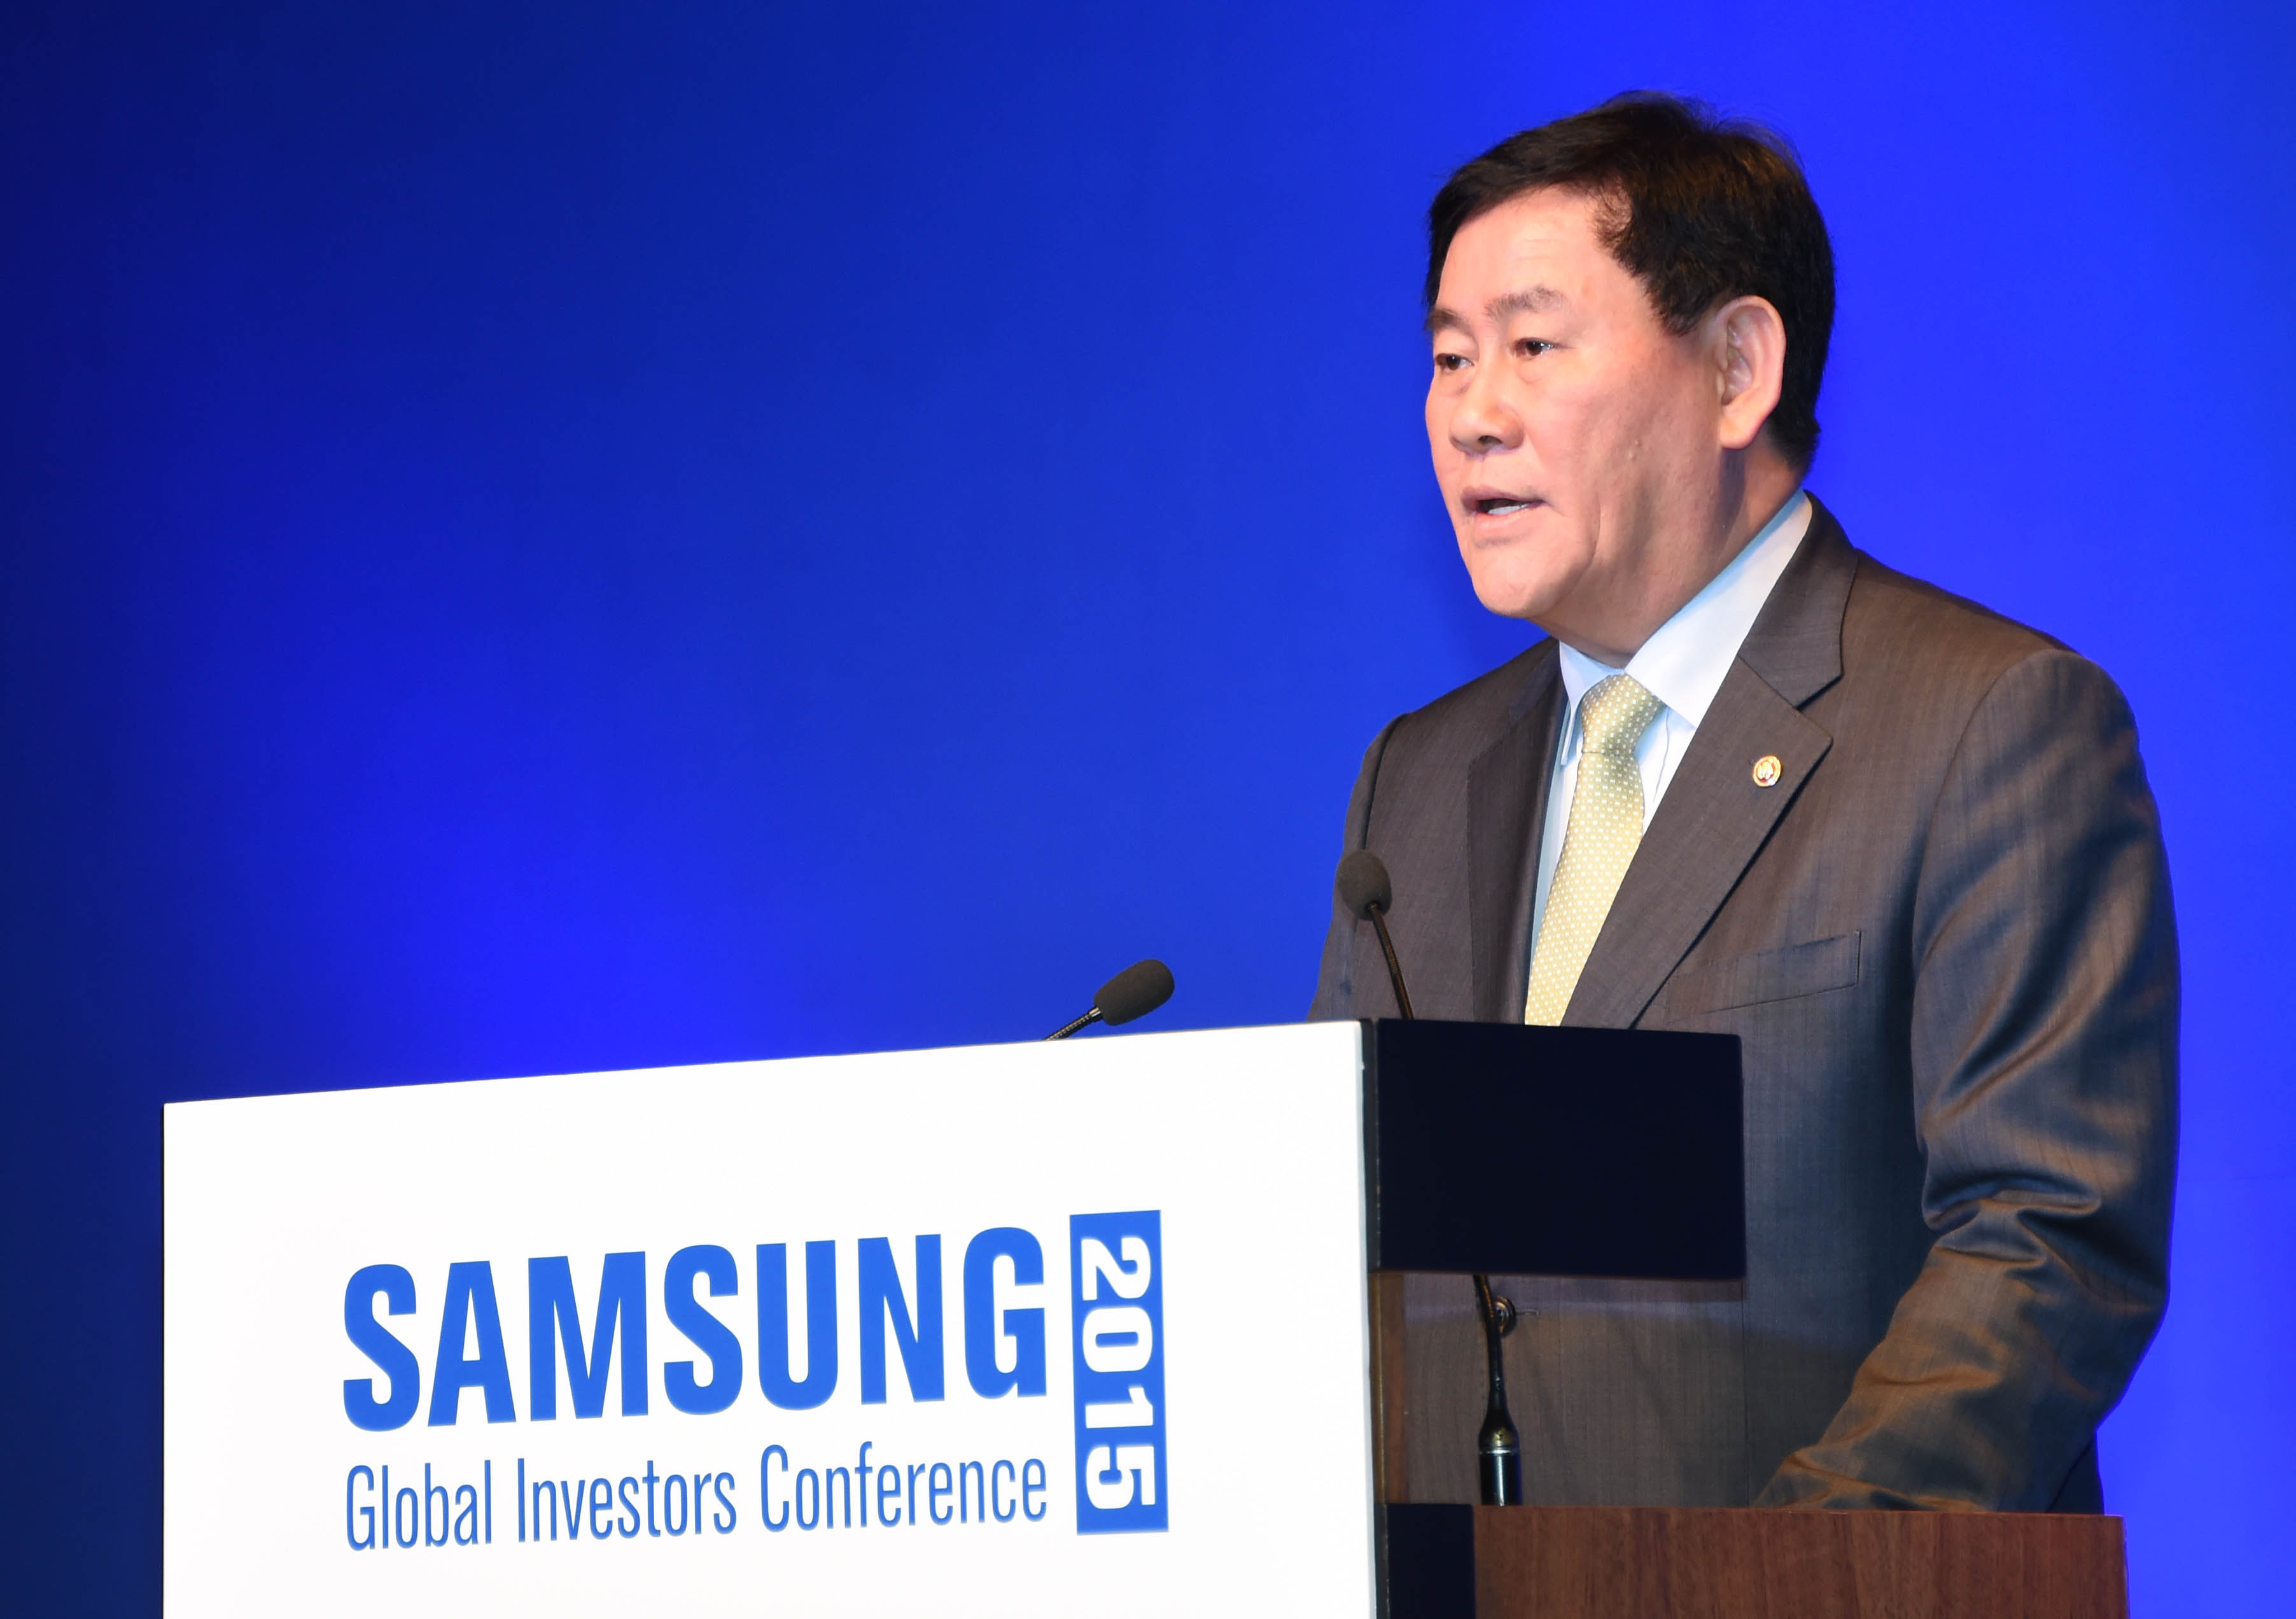 Deputy Prime Minister Choi speaks at the Samsung Global Investors Conference